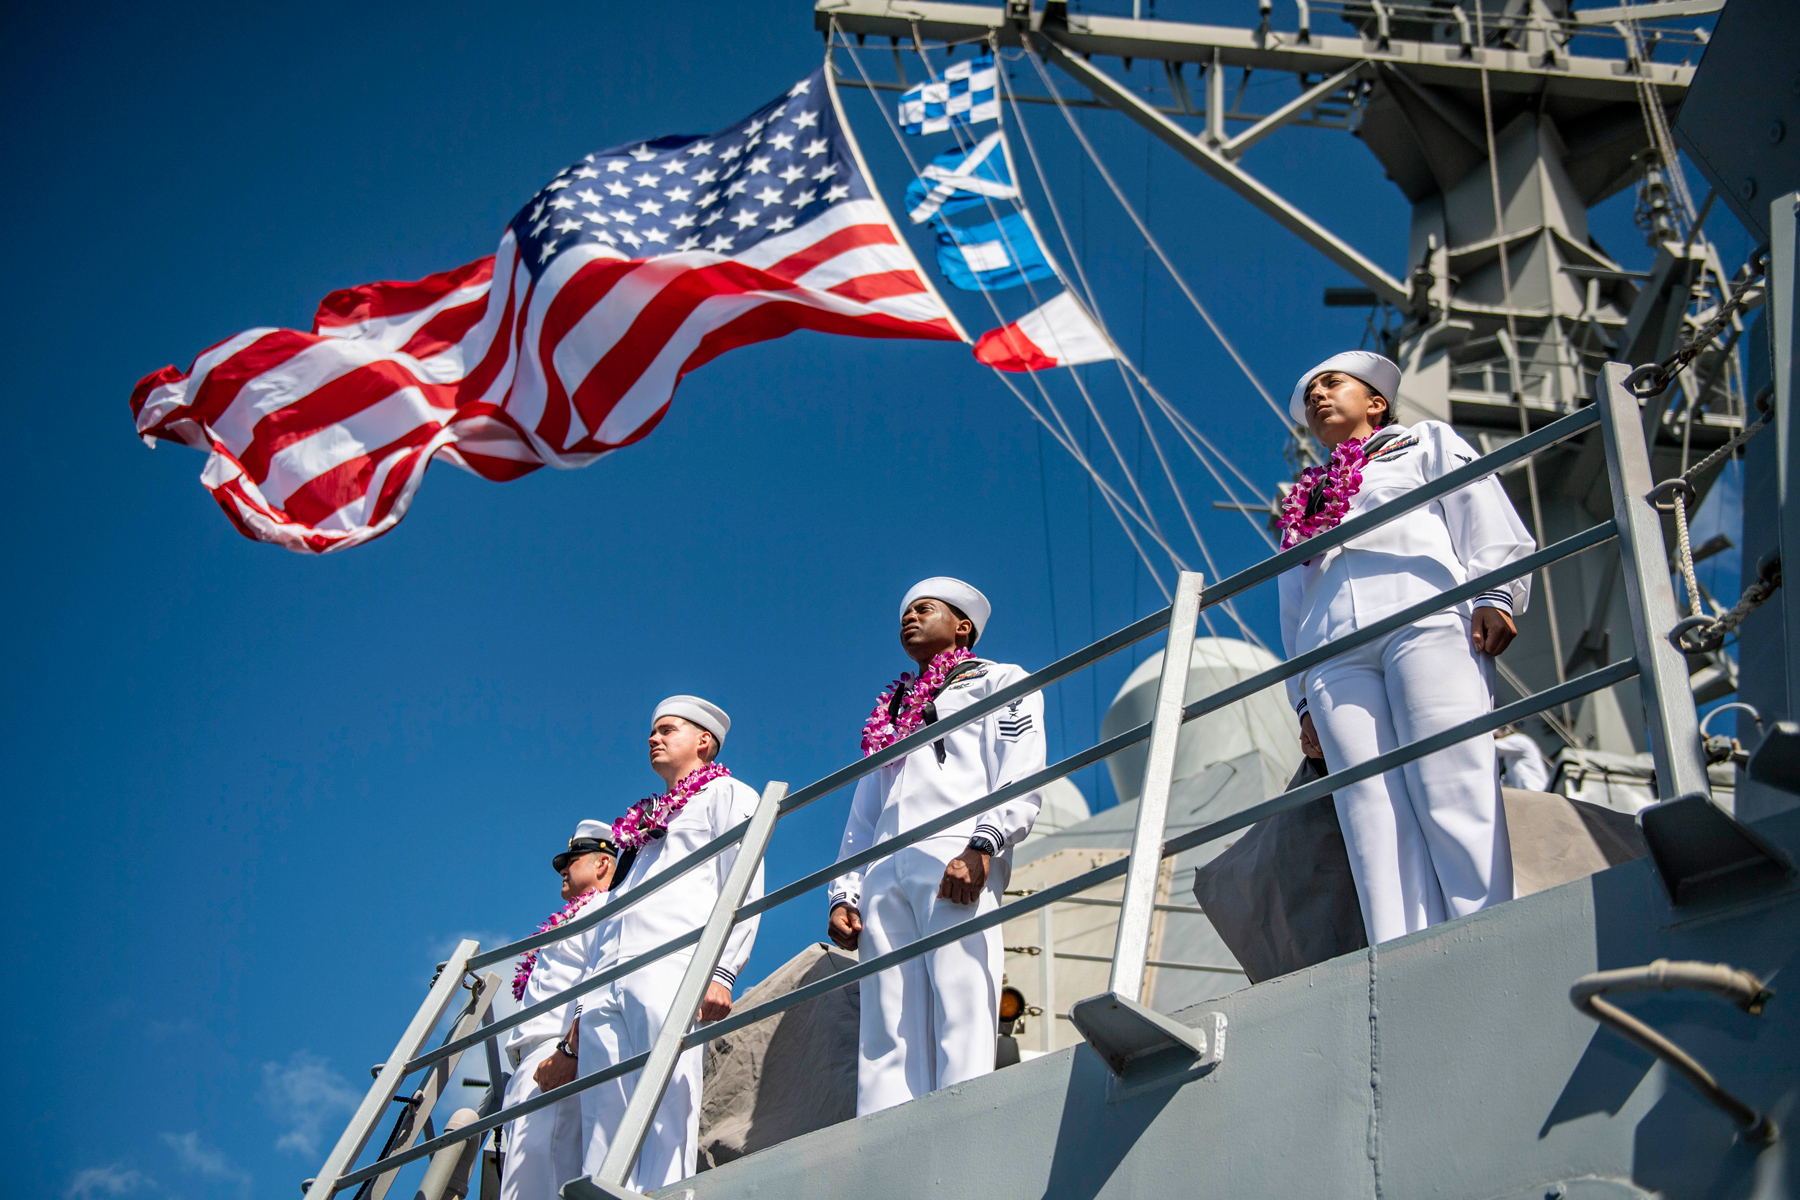 Pearl Harbor Destroyer USS Michael Murphy Returns After 92 Days at Sea